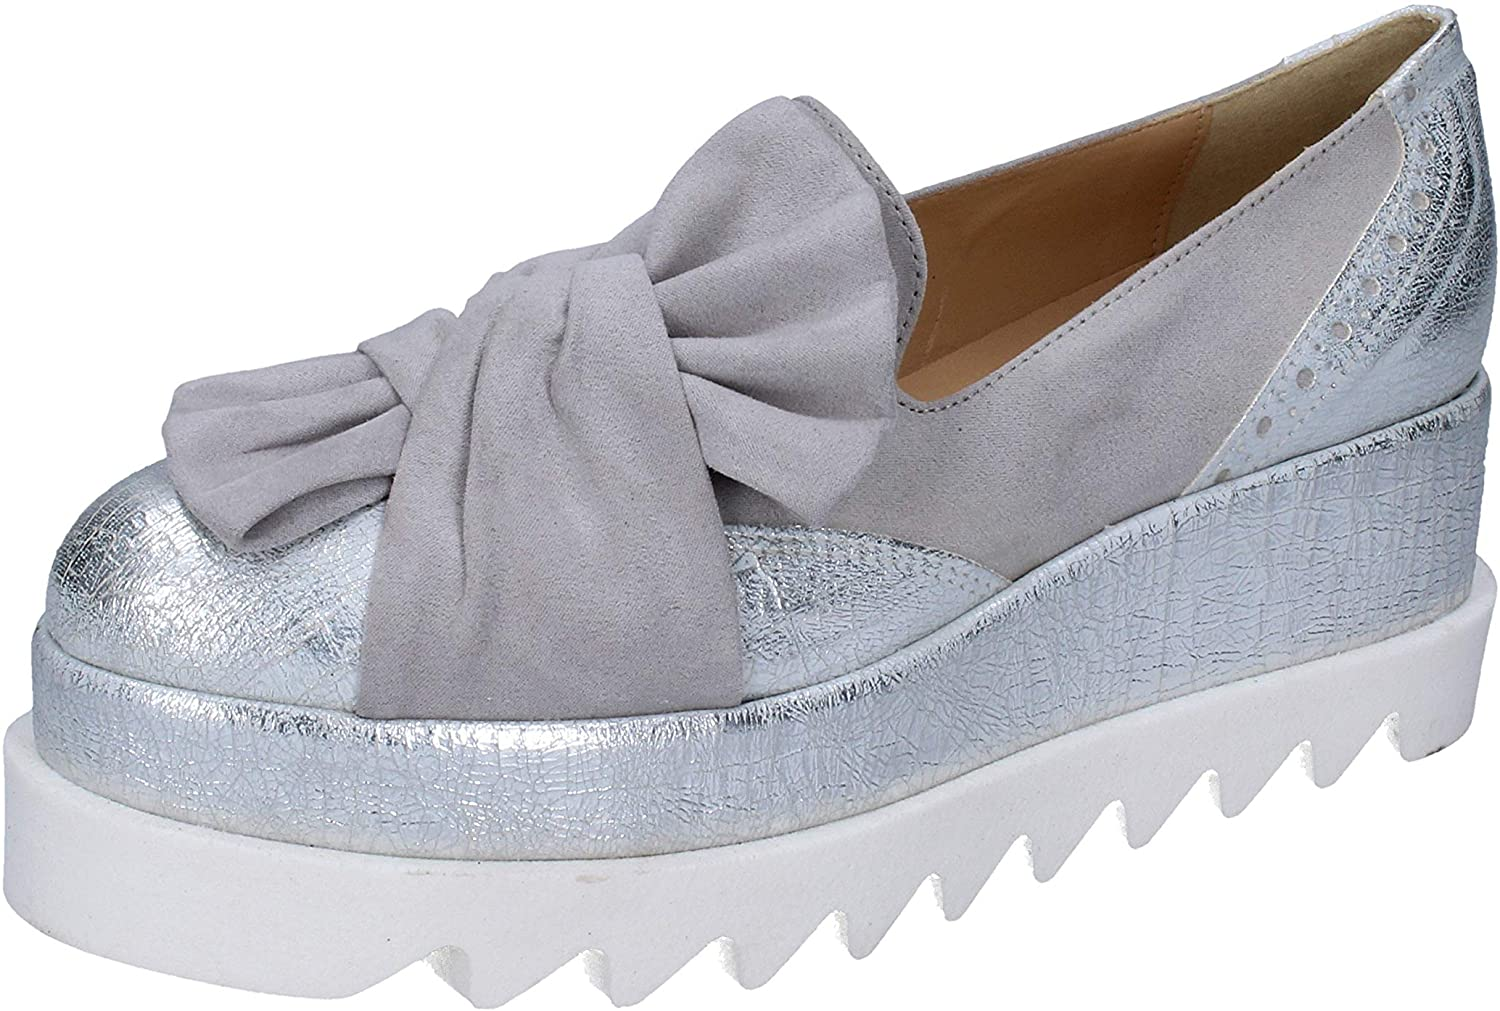 Olga RUBINI Loafers-Shoes Womens Leather Grey